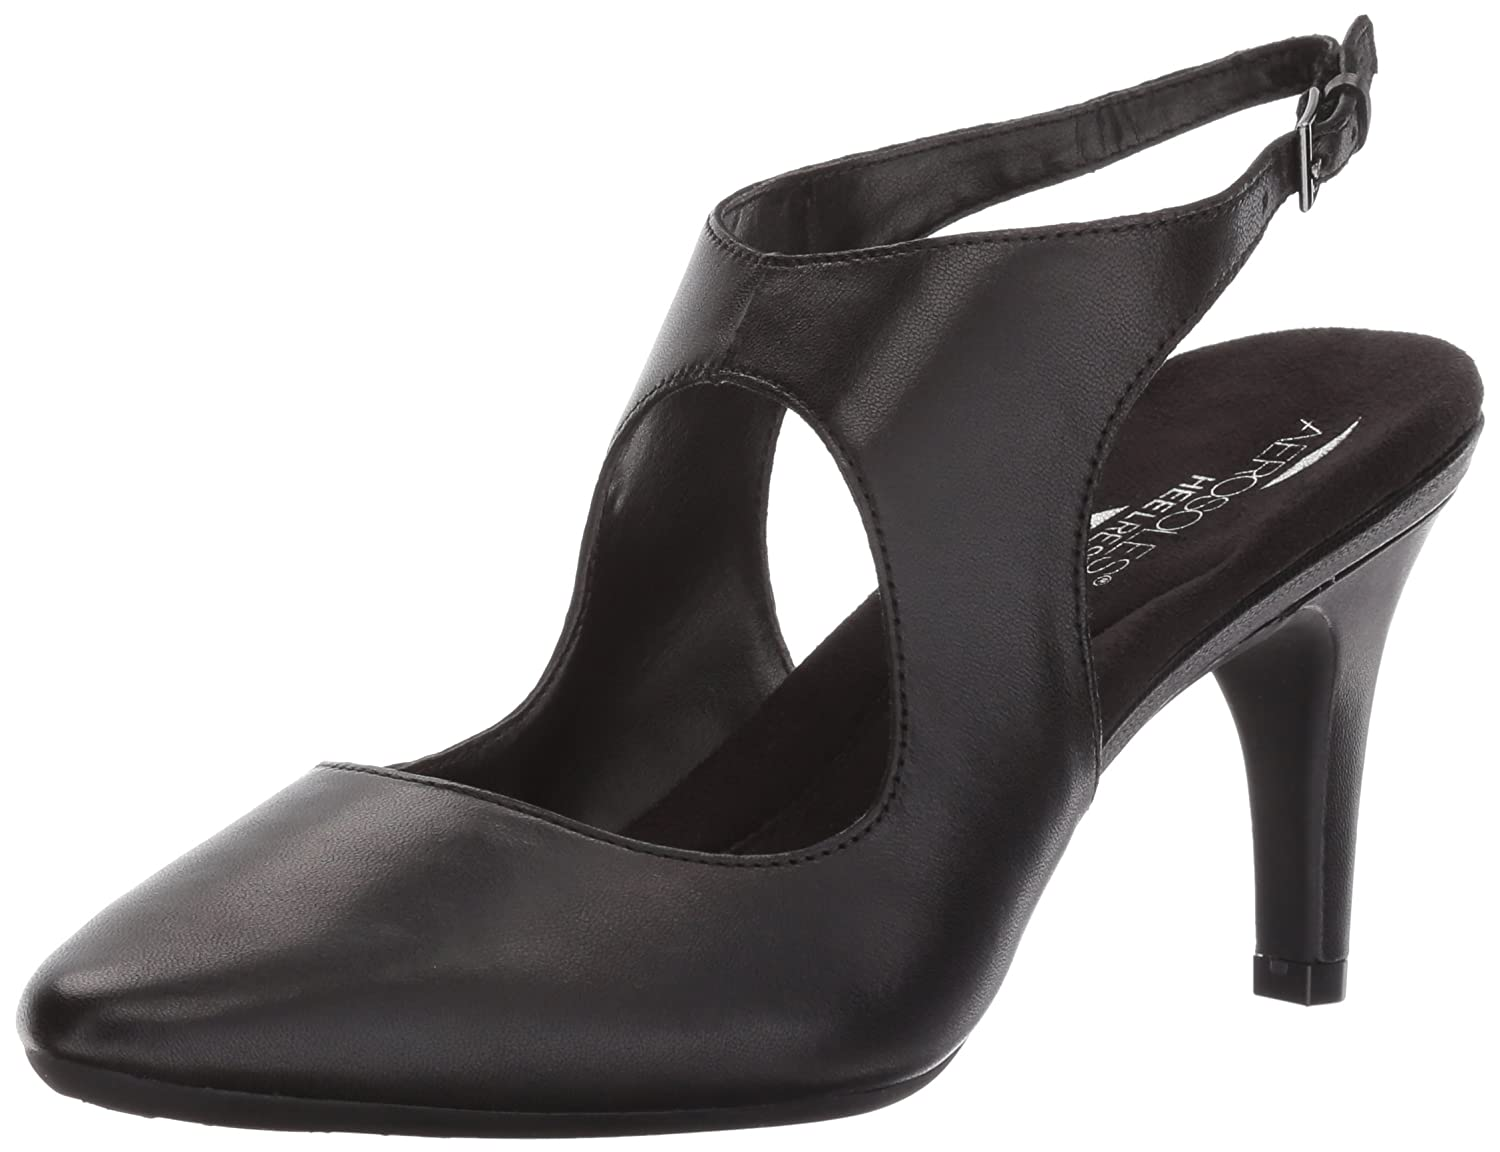 Aerosoles Women's Example Dress Pump B06Y6127RY 9 B(M) US|Black Leather